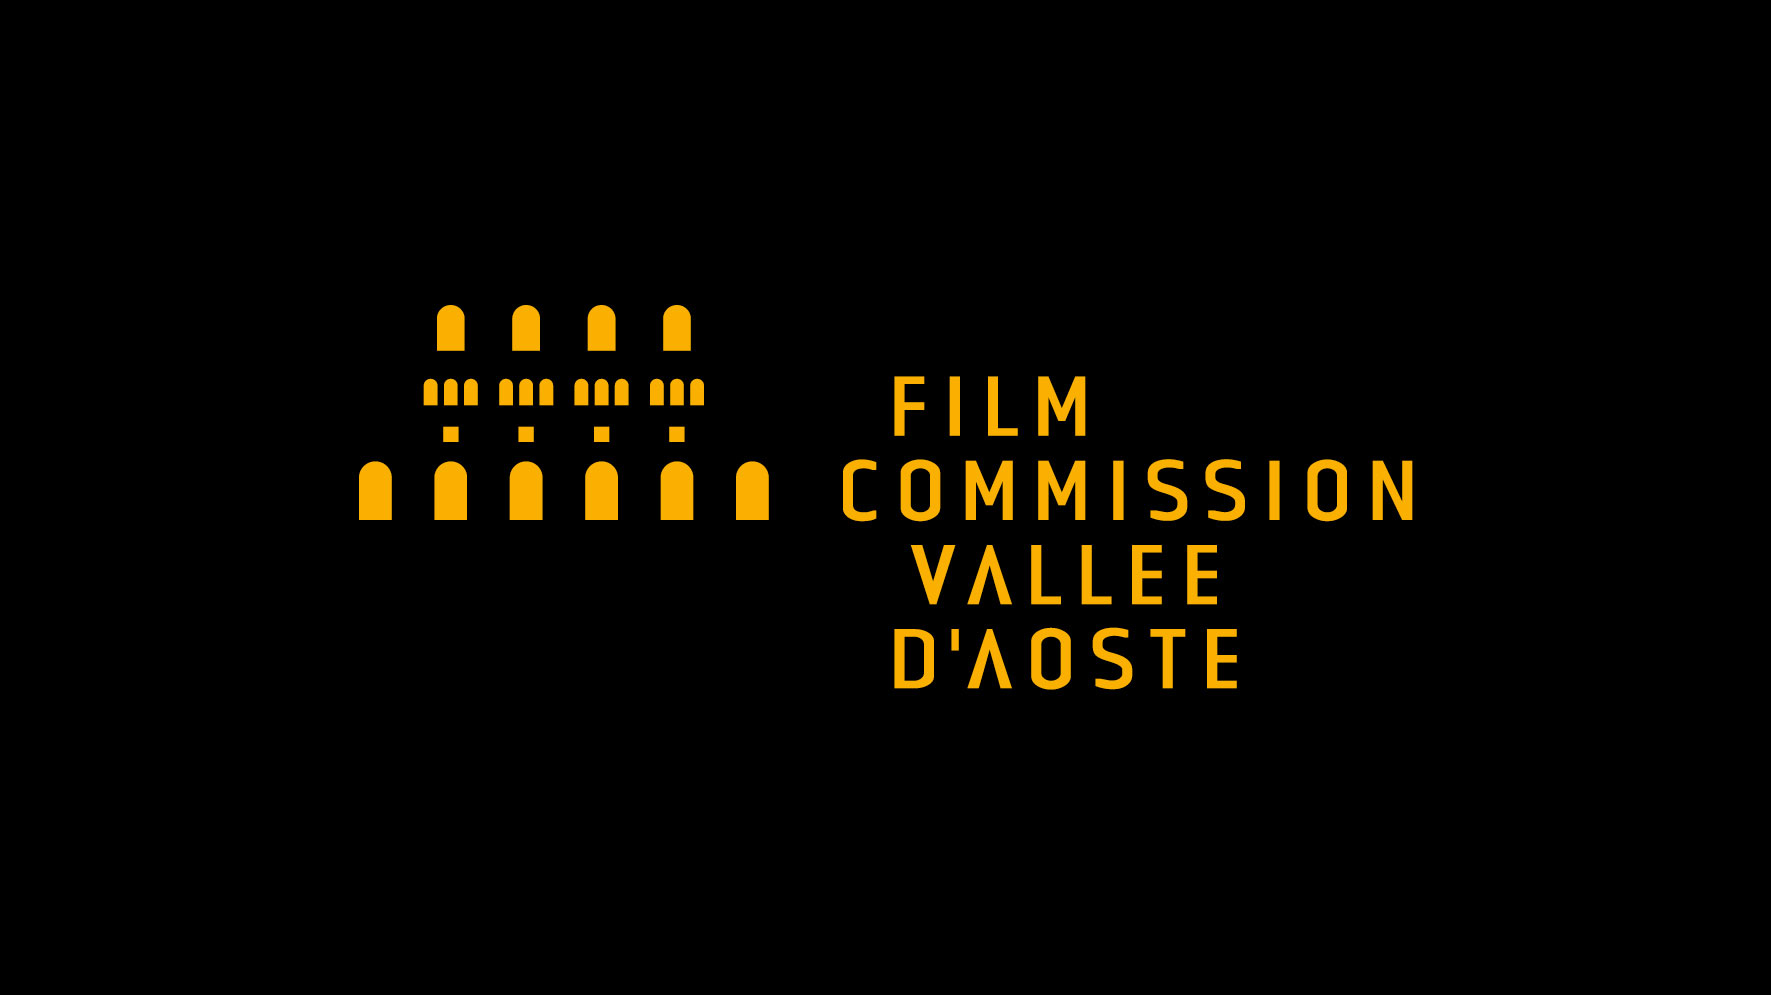 Film Commission Valle d'Aosta